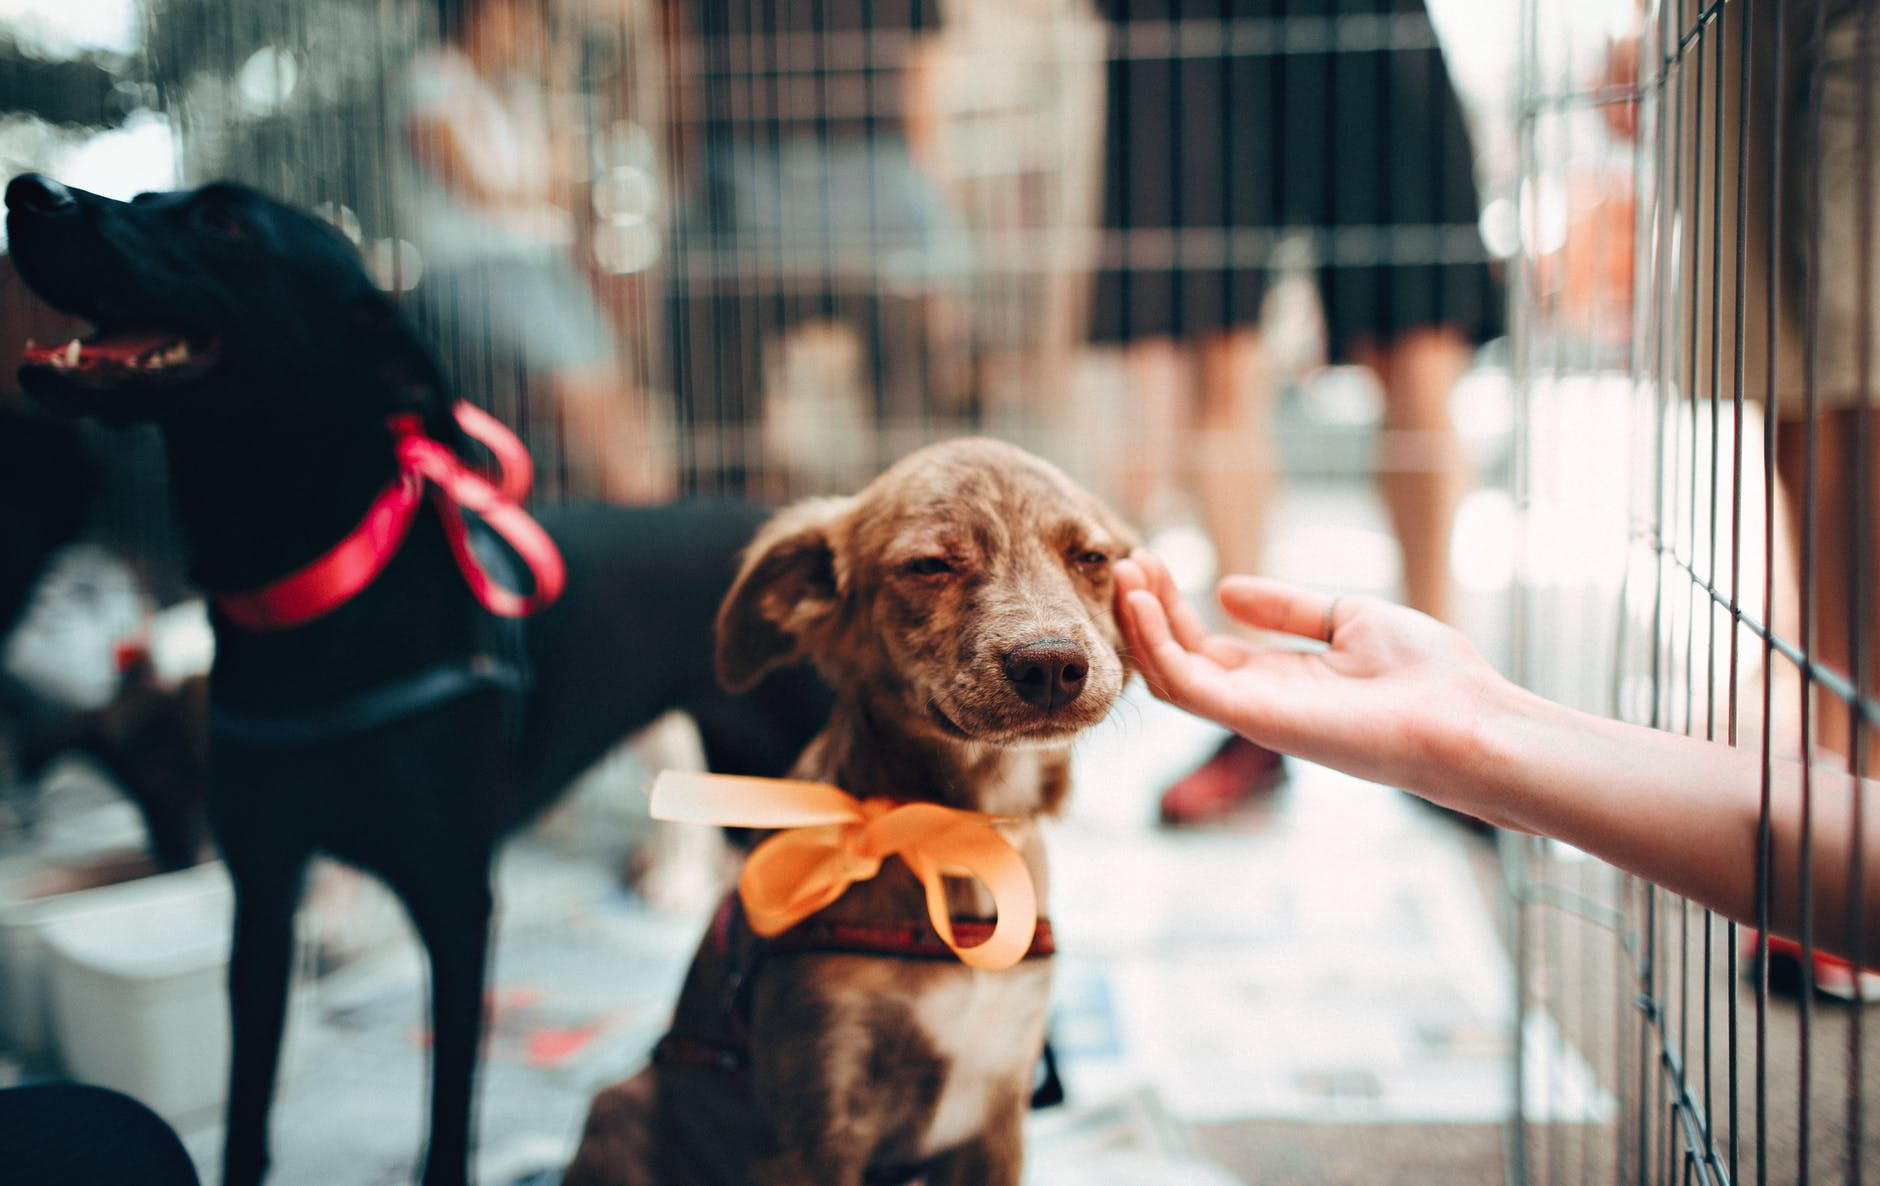 """Photo by Helena Lopes on <a href=""""https://www.pexels.com/photo/person-touching-brown-puppy-1904105/"""" rel=""""nofollow"""">Pexels.com</a>"""